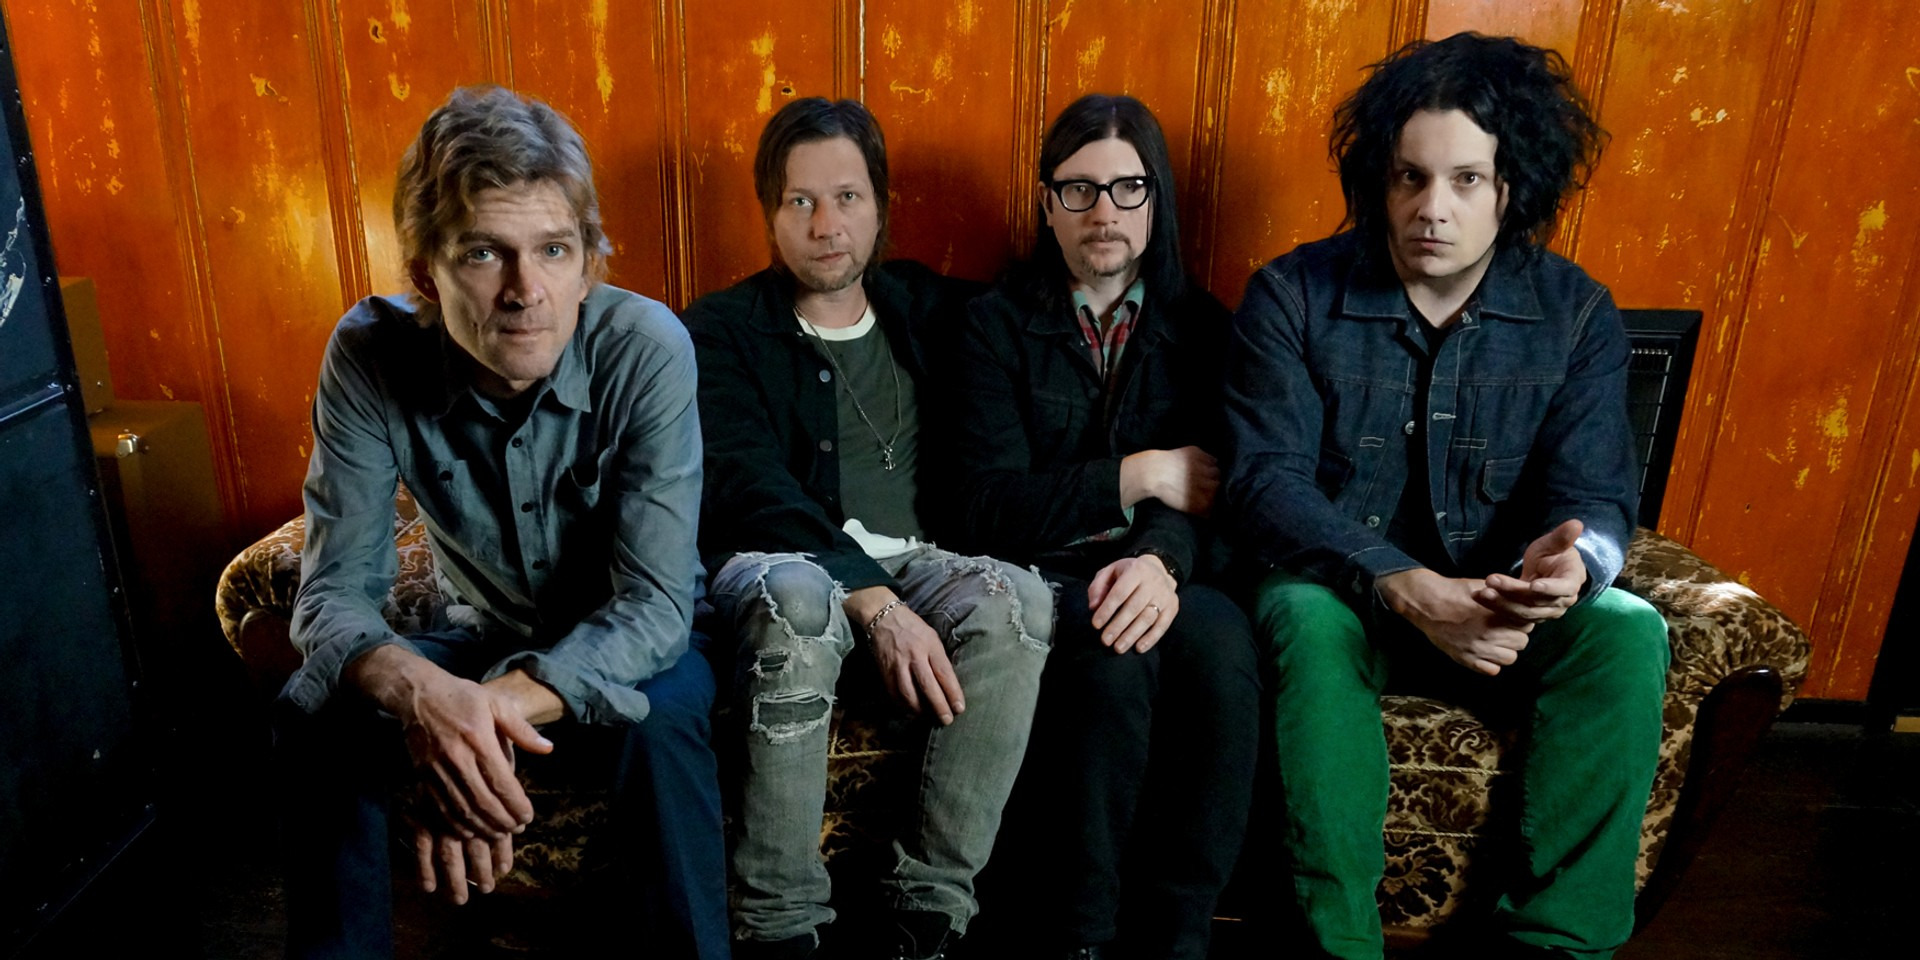 The Raconteurs release new single, 'Bored and Razed' – listen